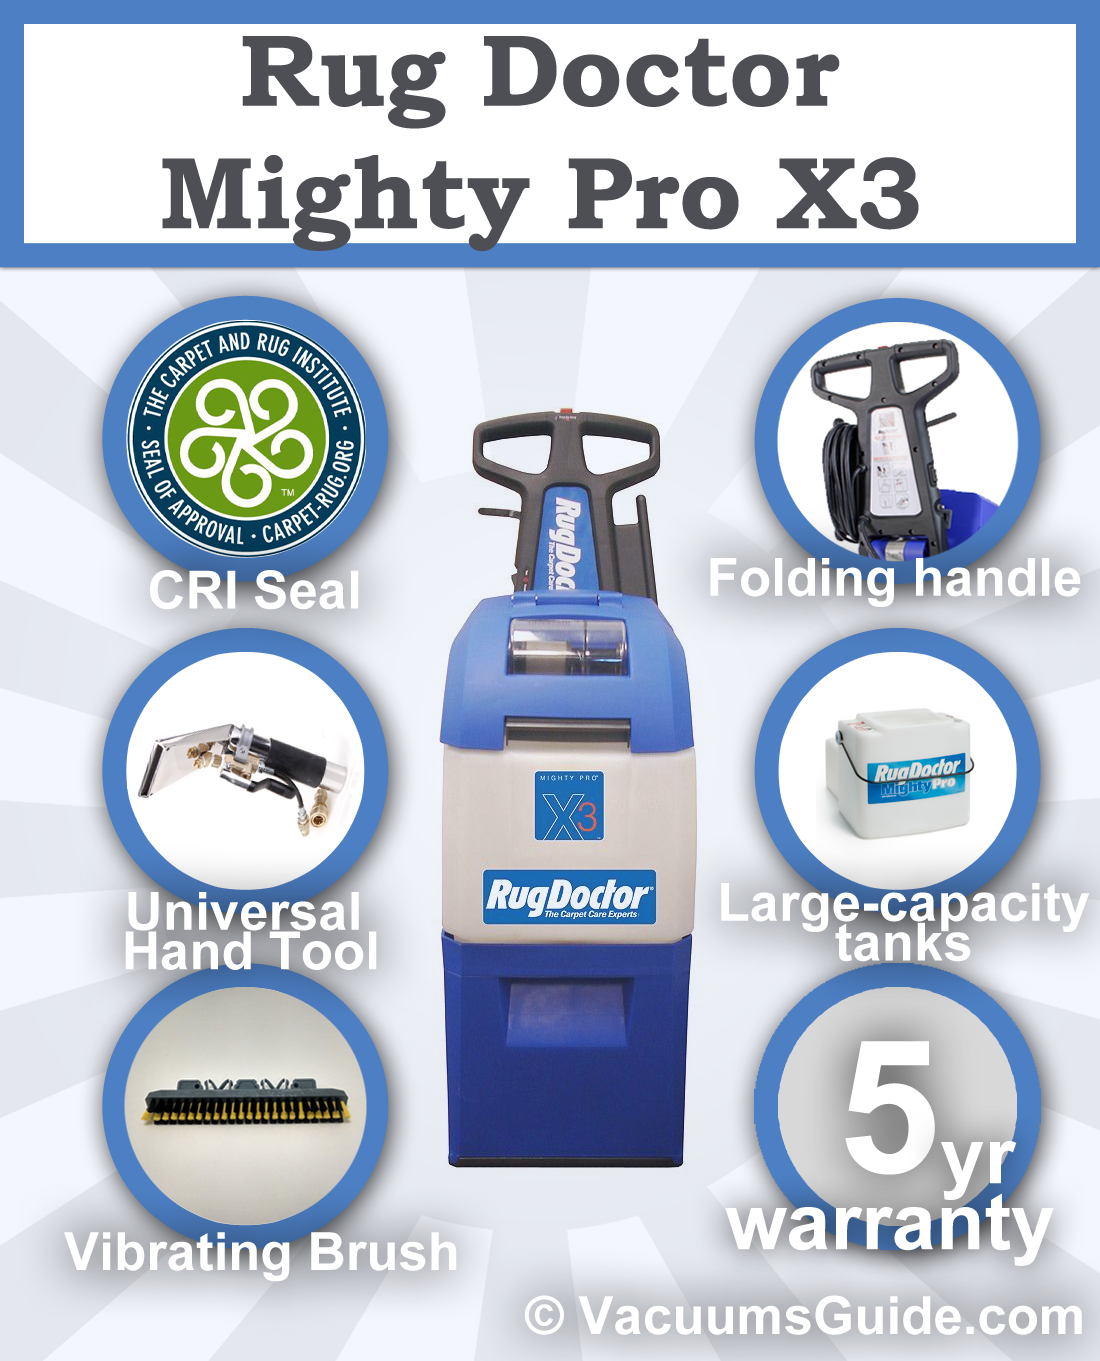 Lovely Rug Doctor Mighty Pro X3   Renting Or Buying?   Best Vacuum Cleaner   The  Ultimate Guide   Clean Smartly